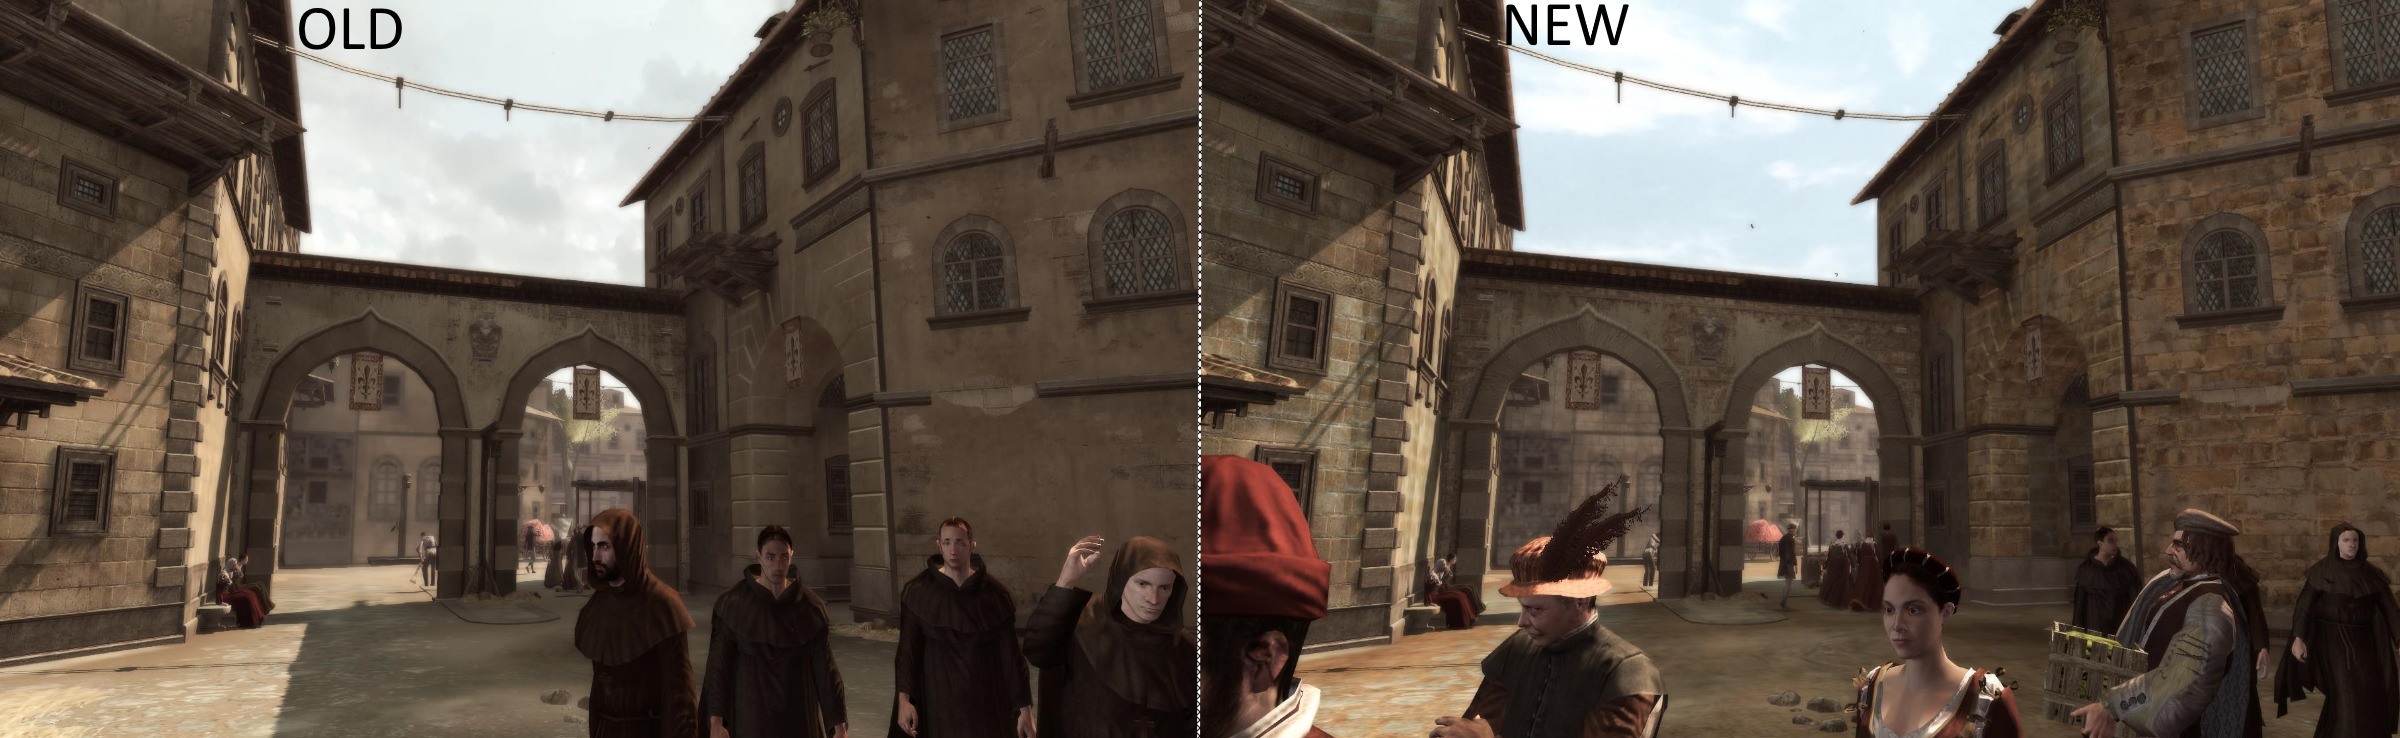 Assassin's Creed 2 - Overhaul 2 0 mod is now available, comparison